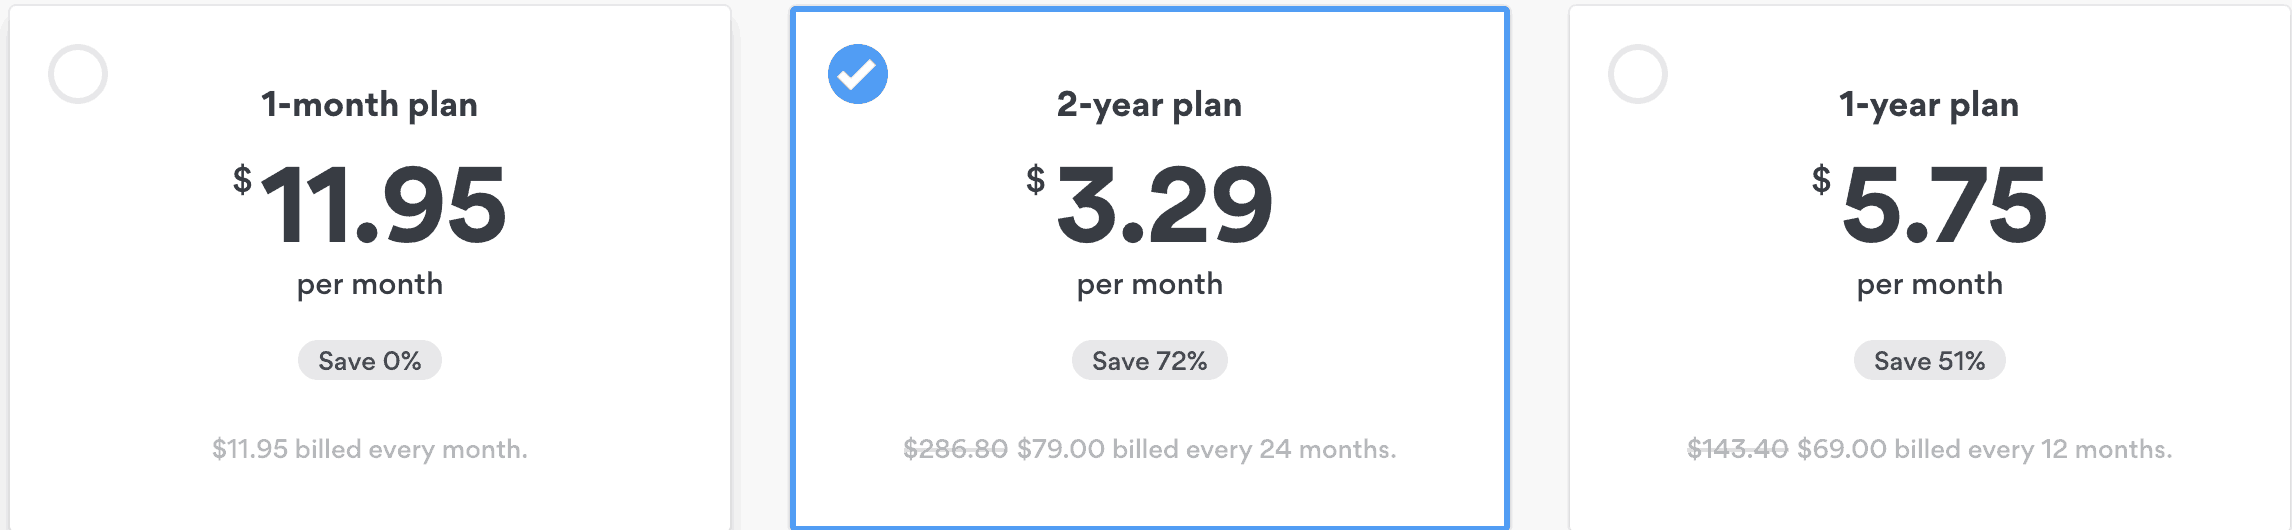 NordVPN Pricing and Plans